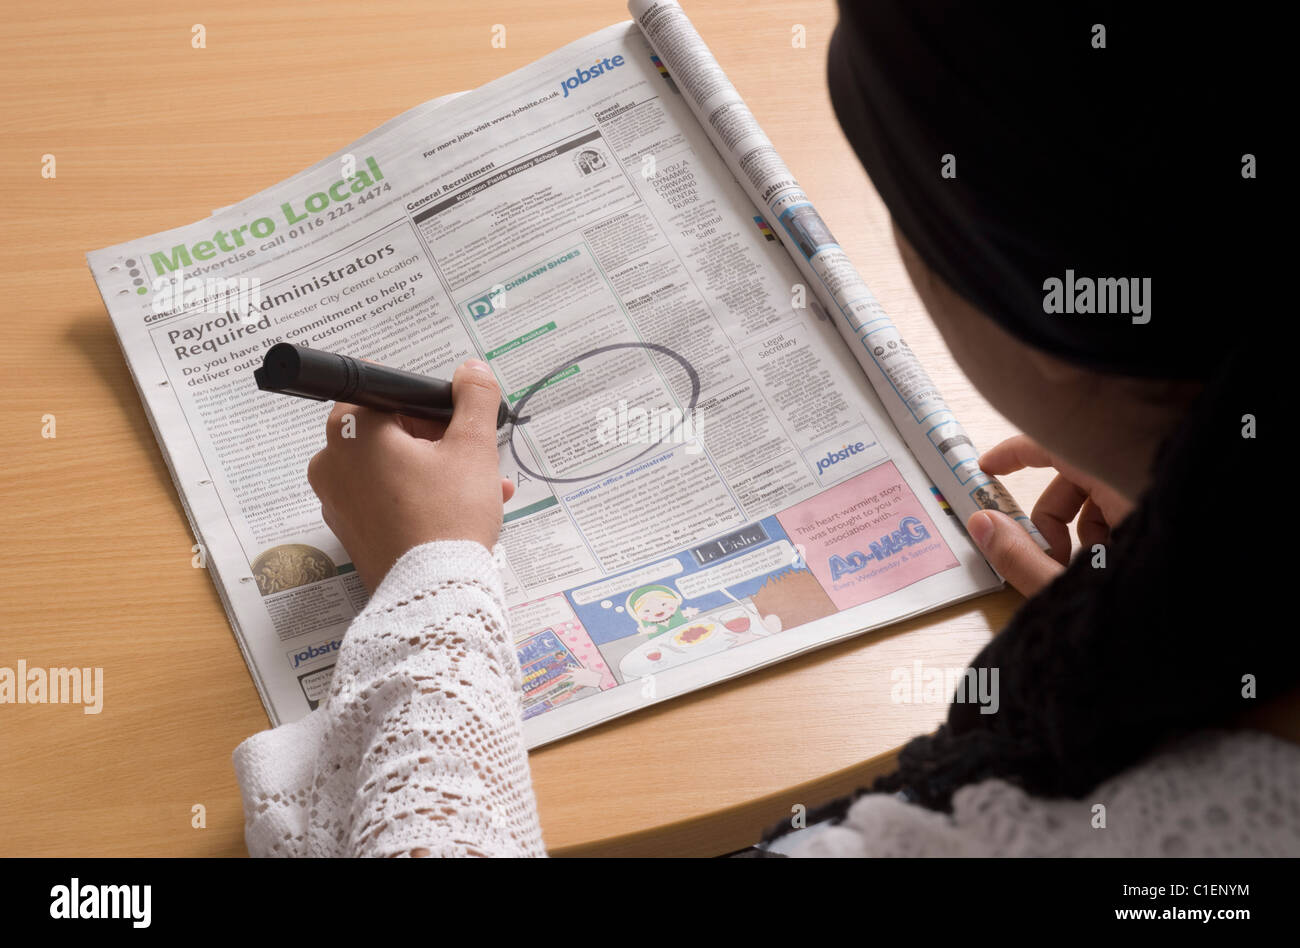 Job Hunting in a Newspaper - Stock Image